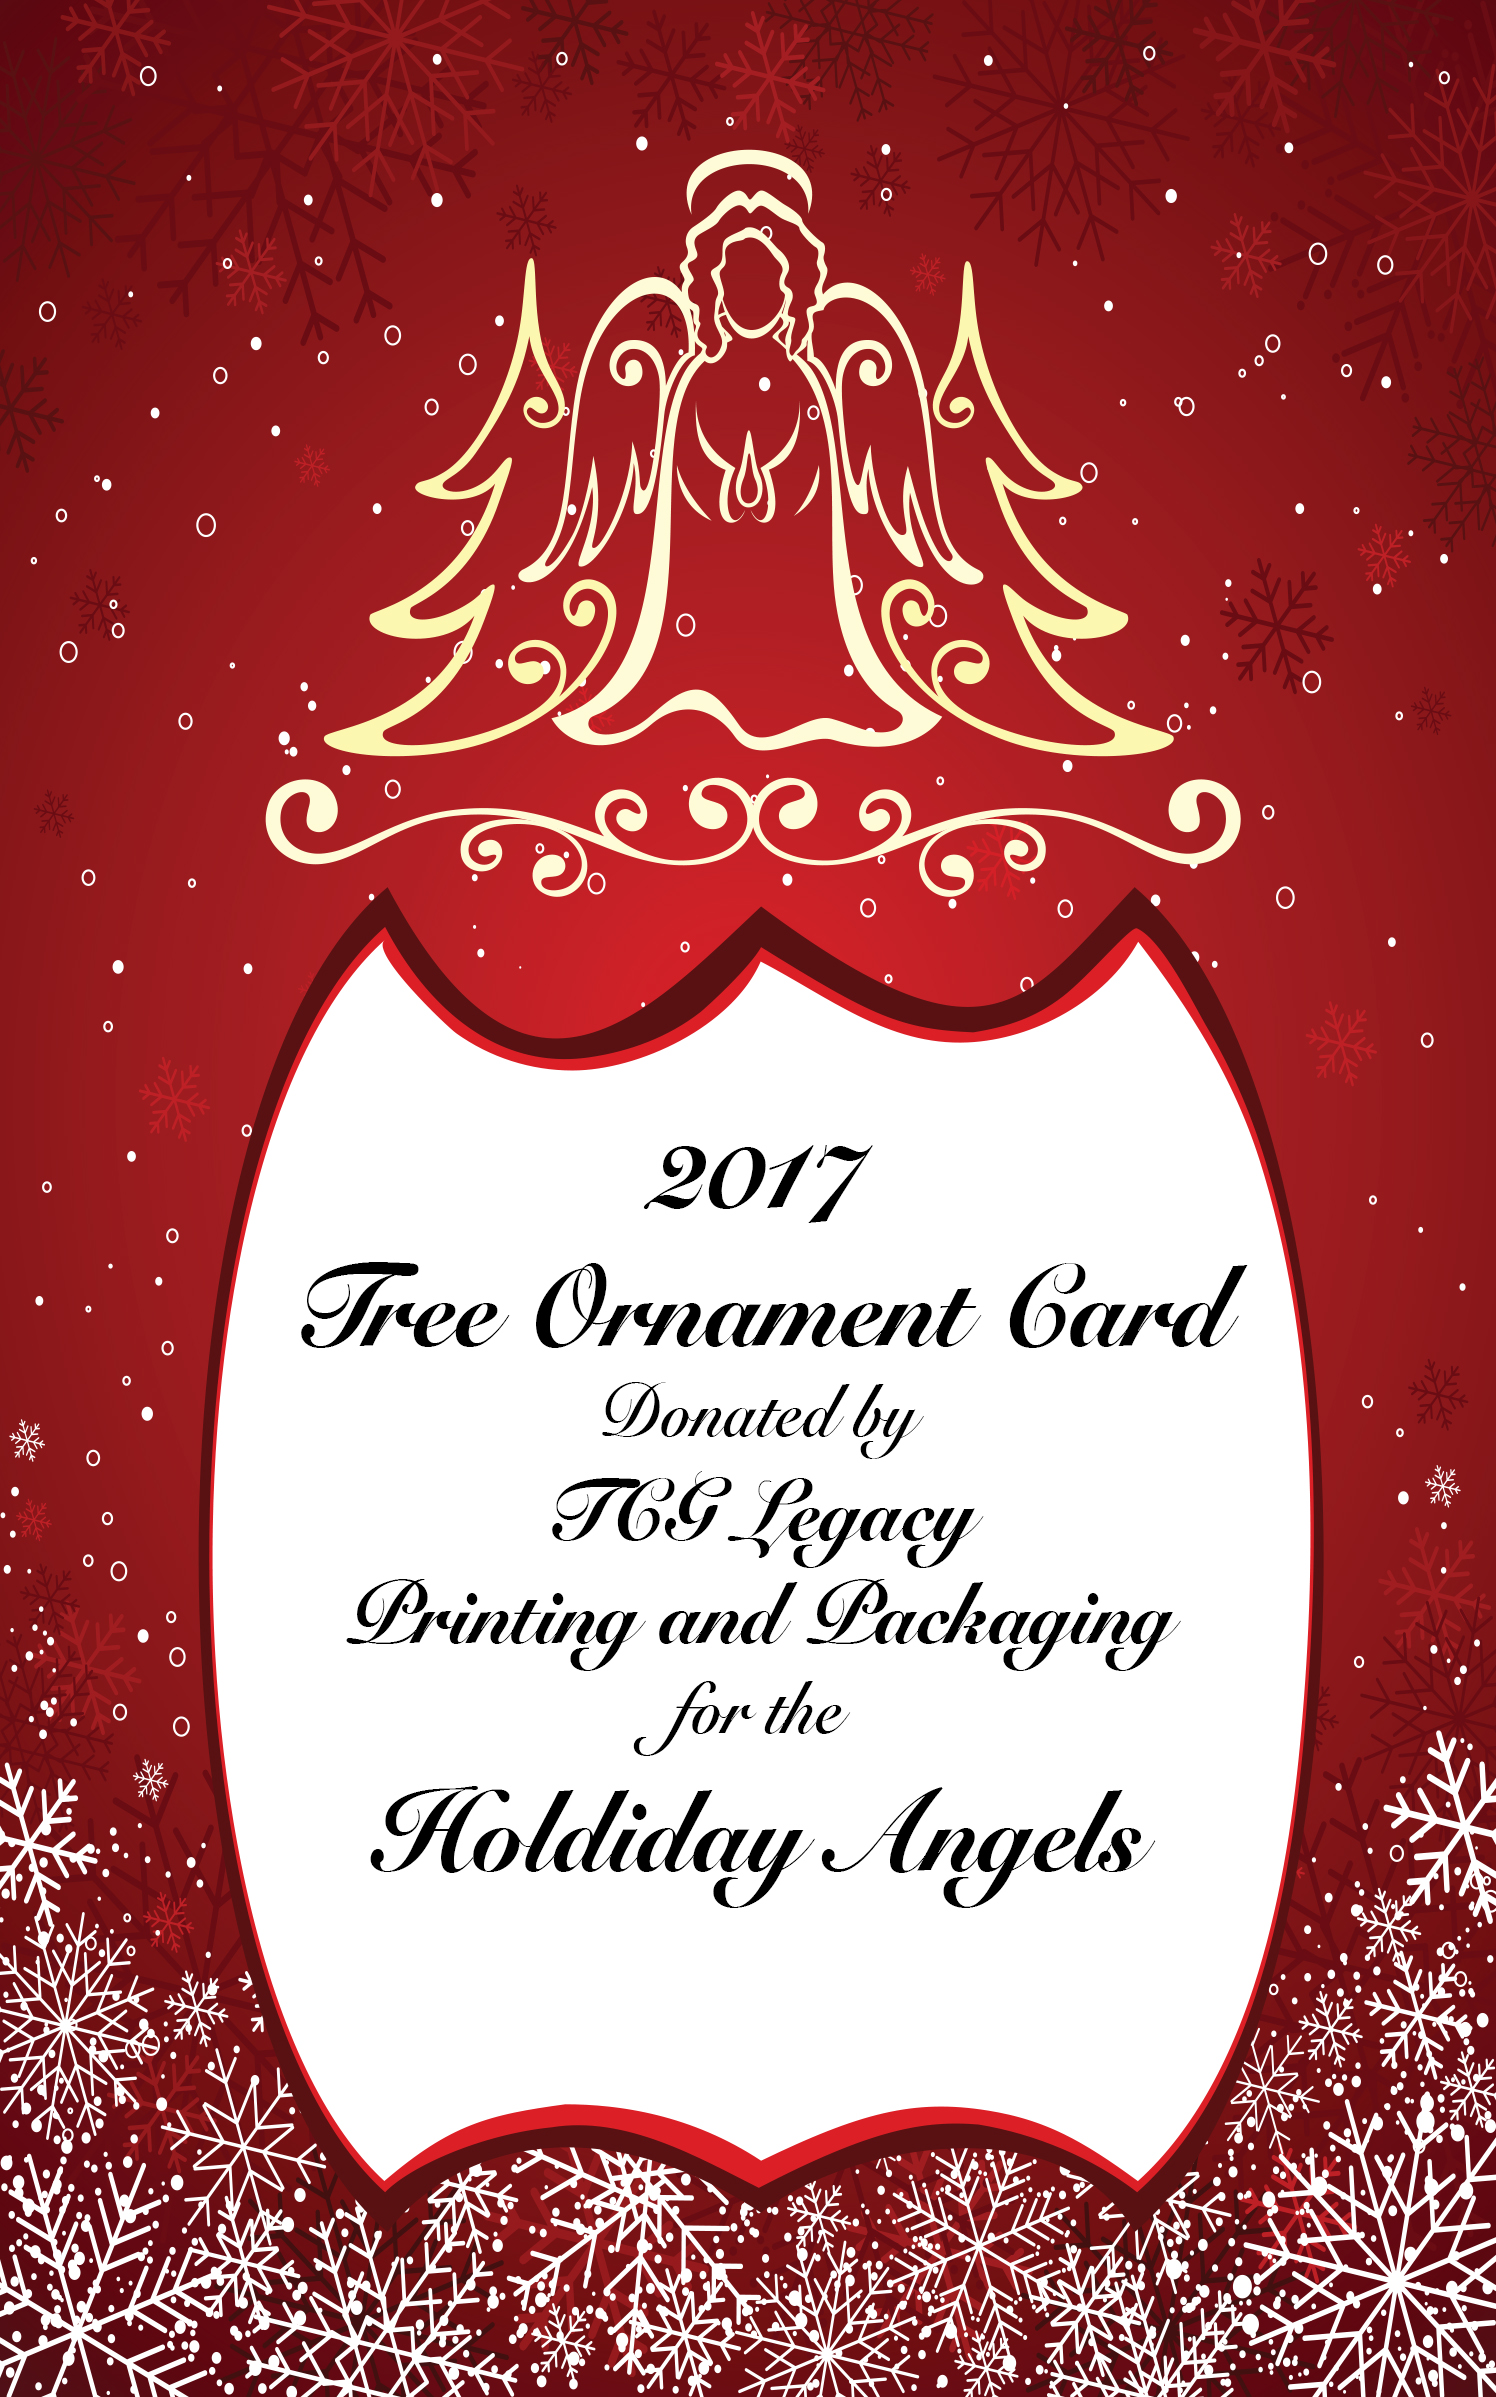 2017 angel cardsforwebsite tcg legacy printing and packaging 2017 angel cardsforwebsite kristyandbryce Image collections